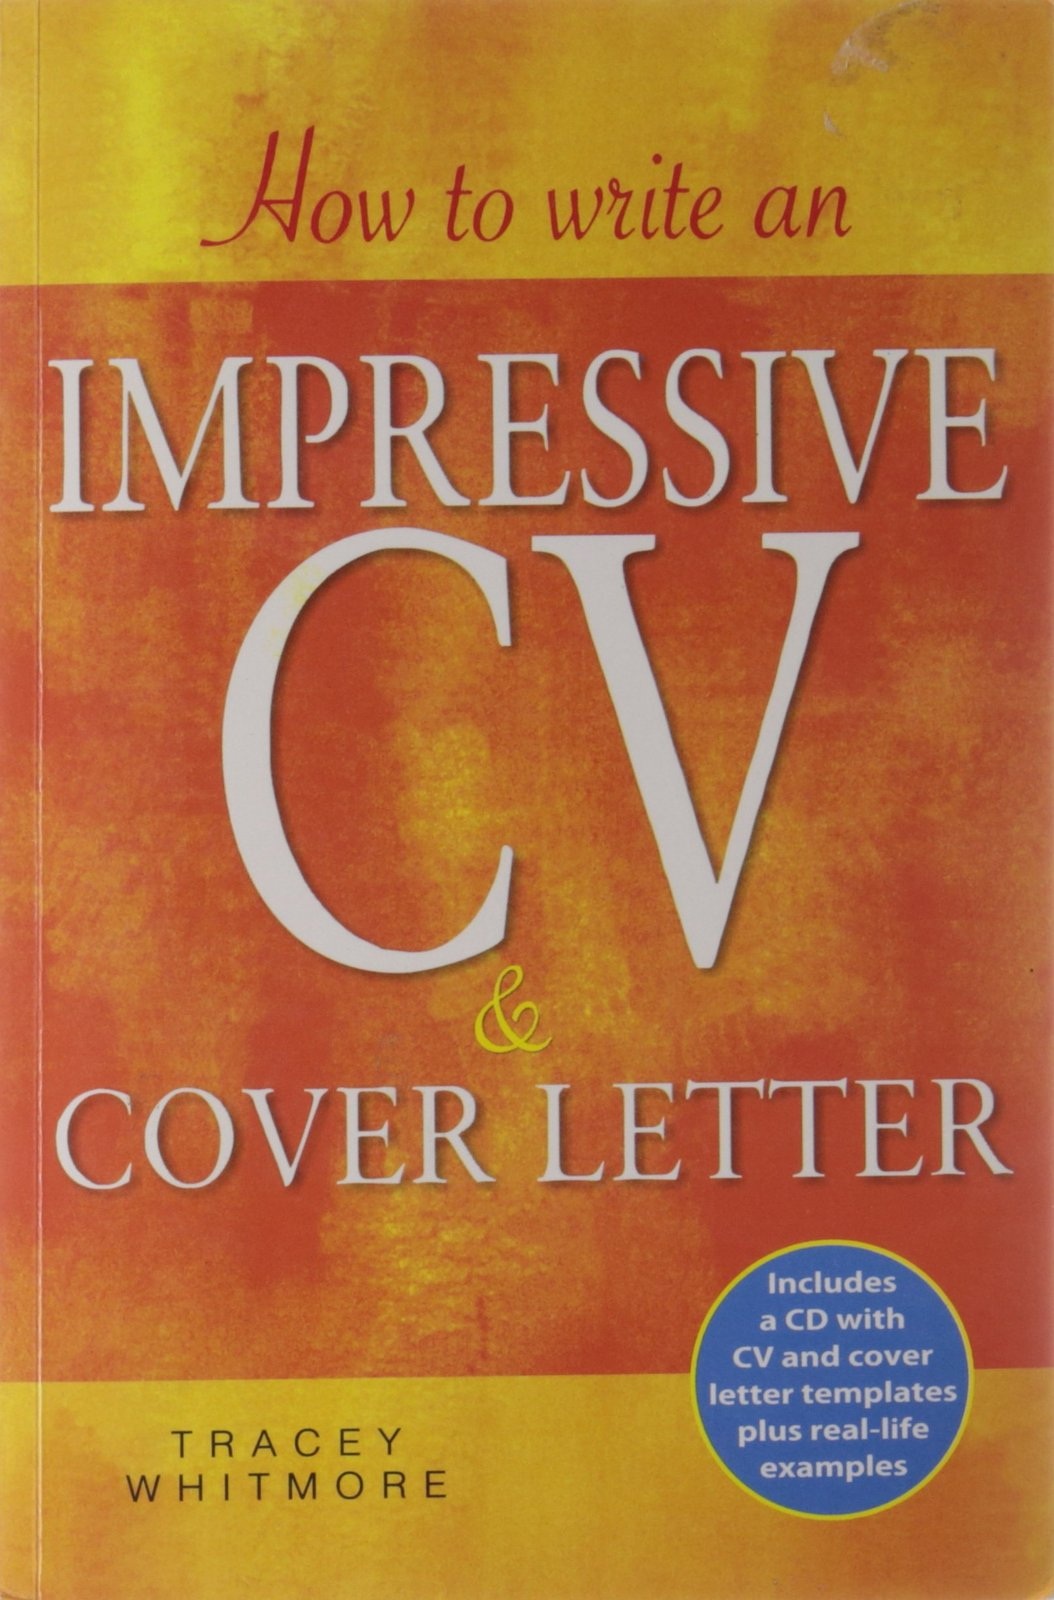 how to write an impressive cv cover letter jan 01 2011